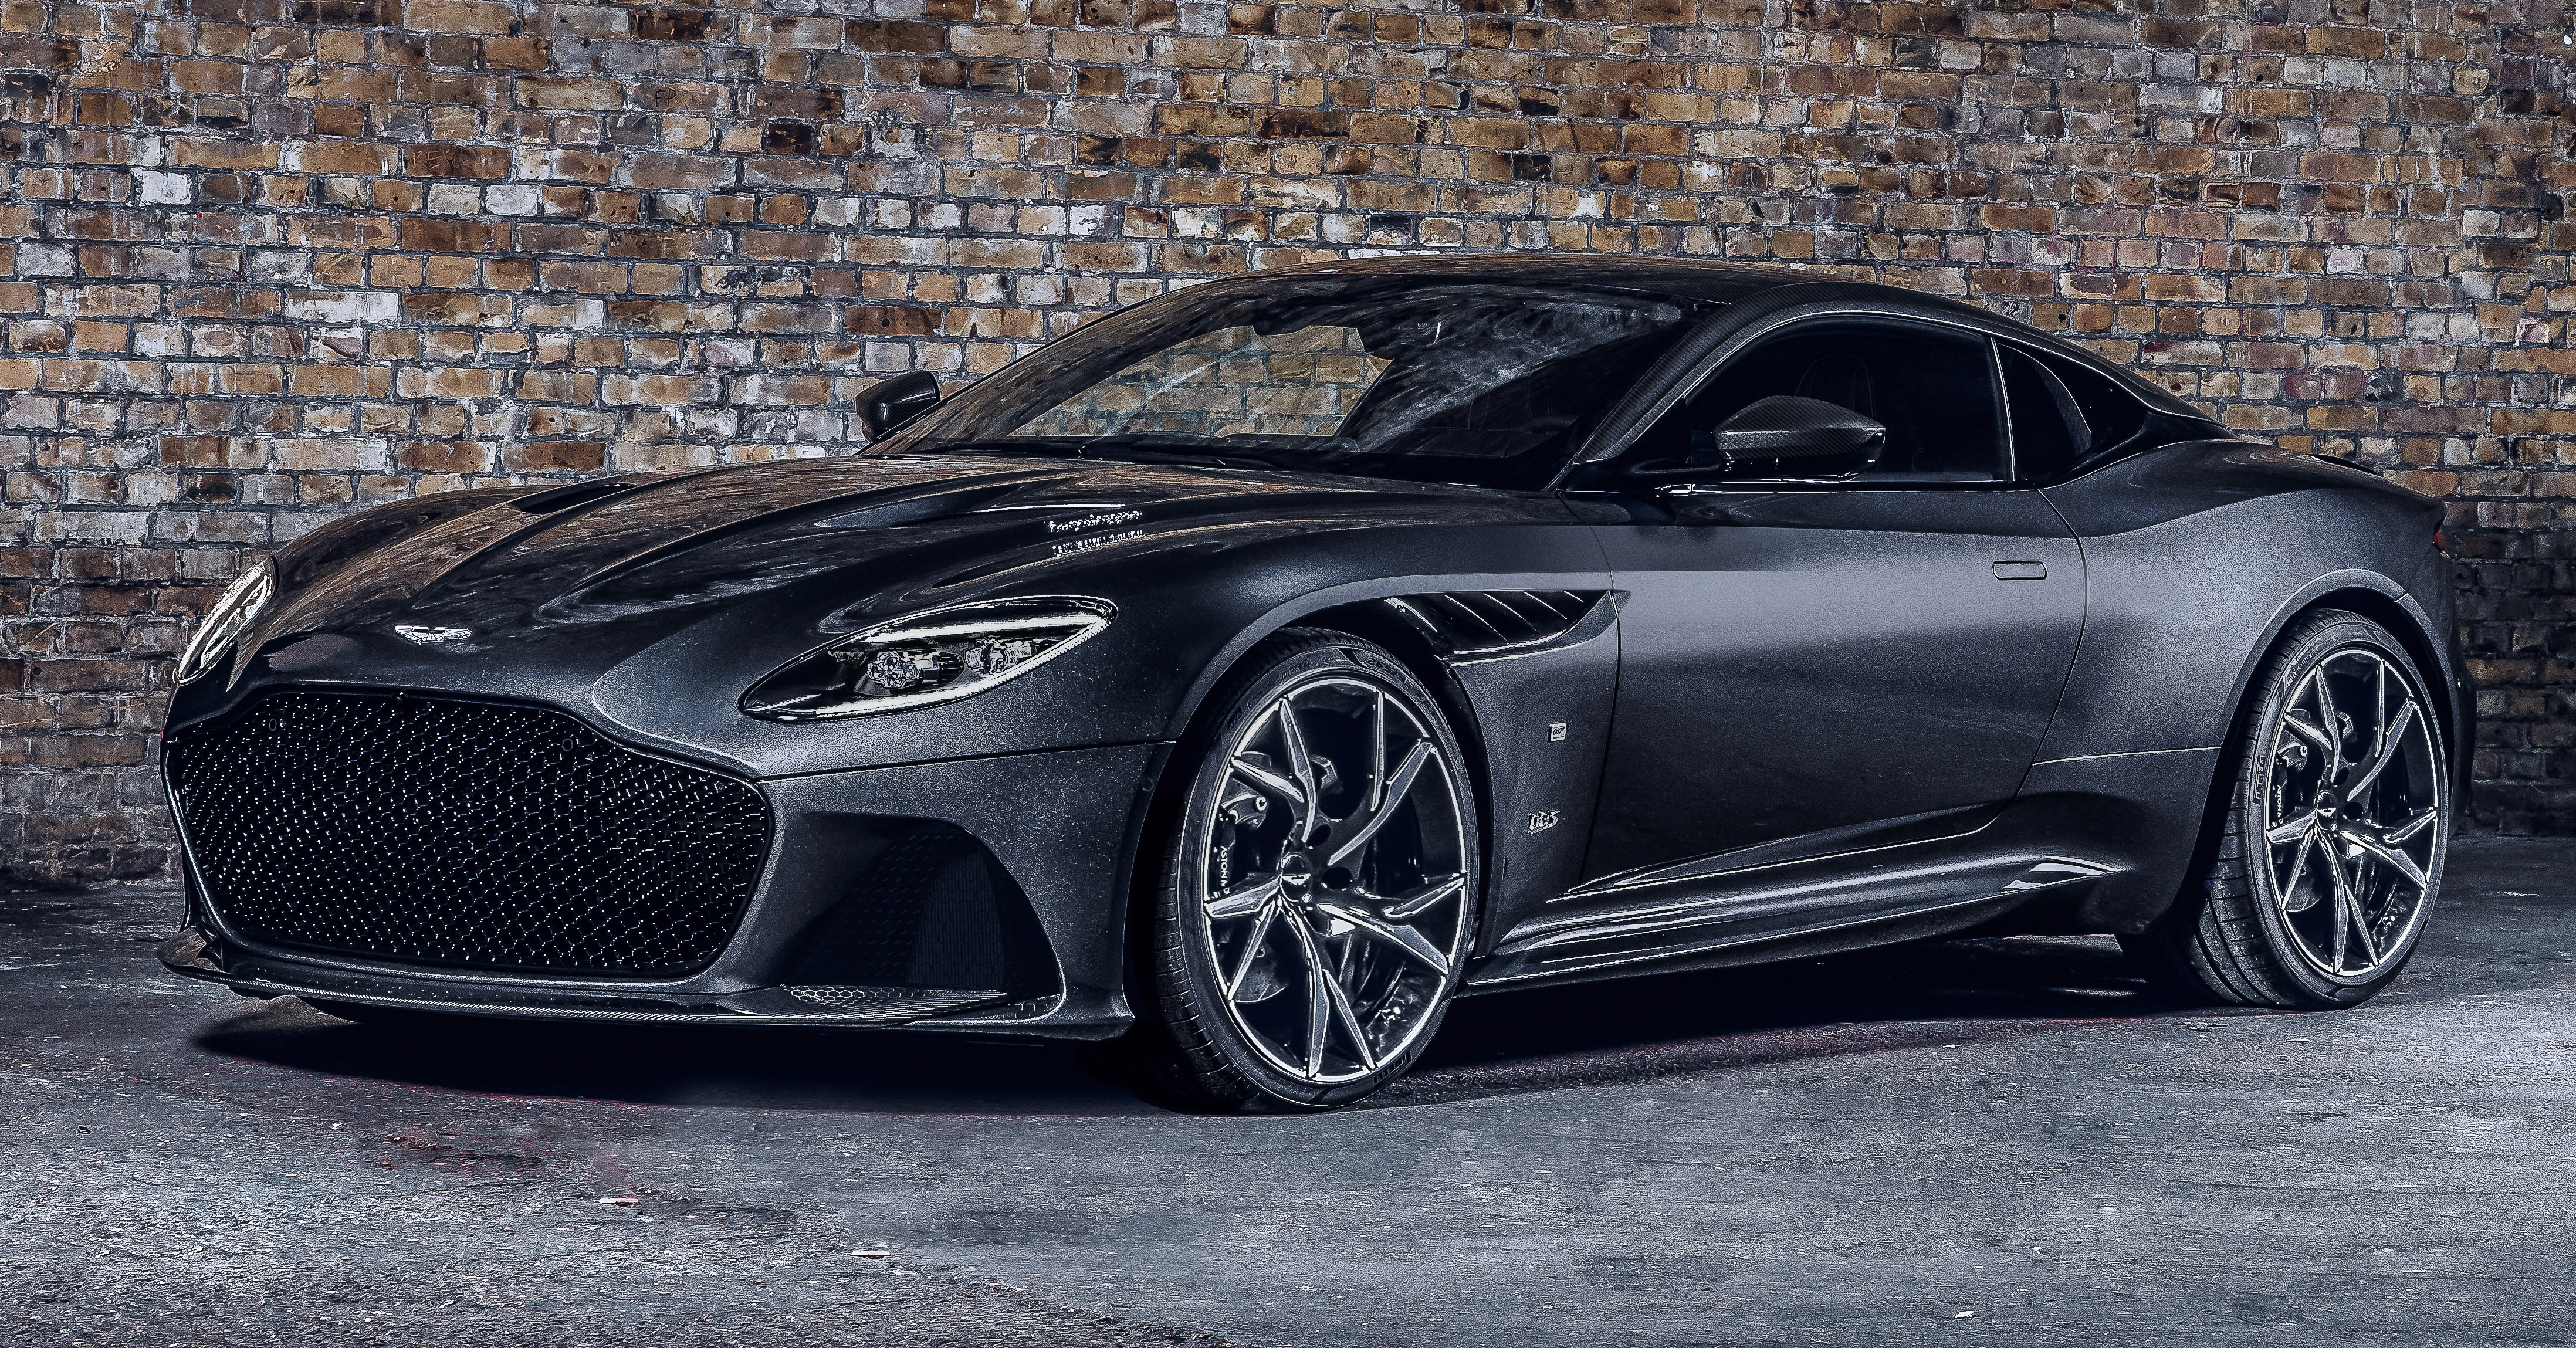 Aston Martin To Receive Bespoke Engines From Amg Paultan Org